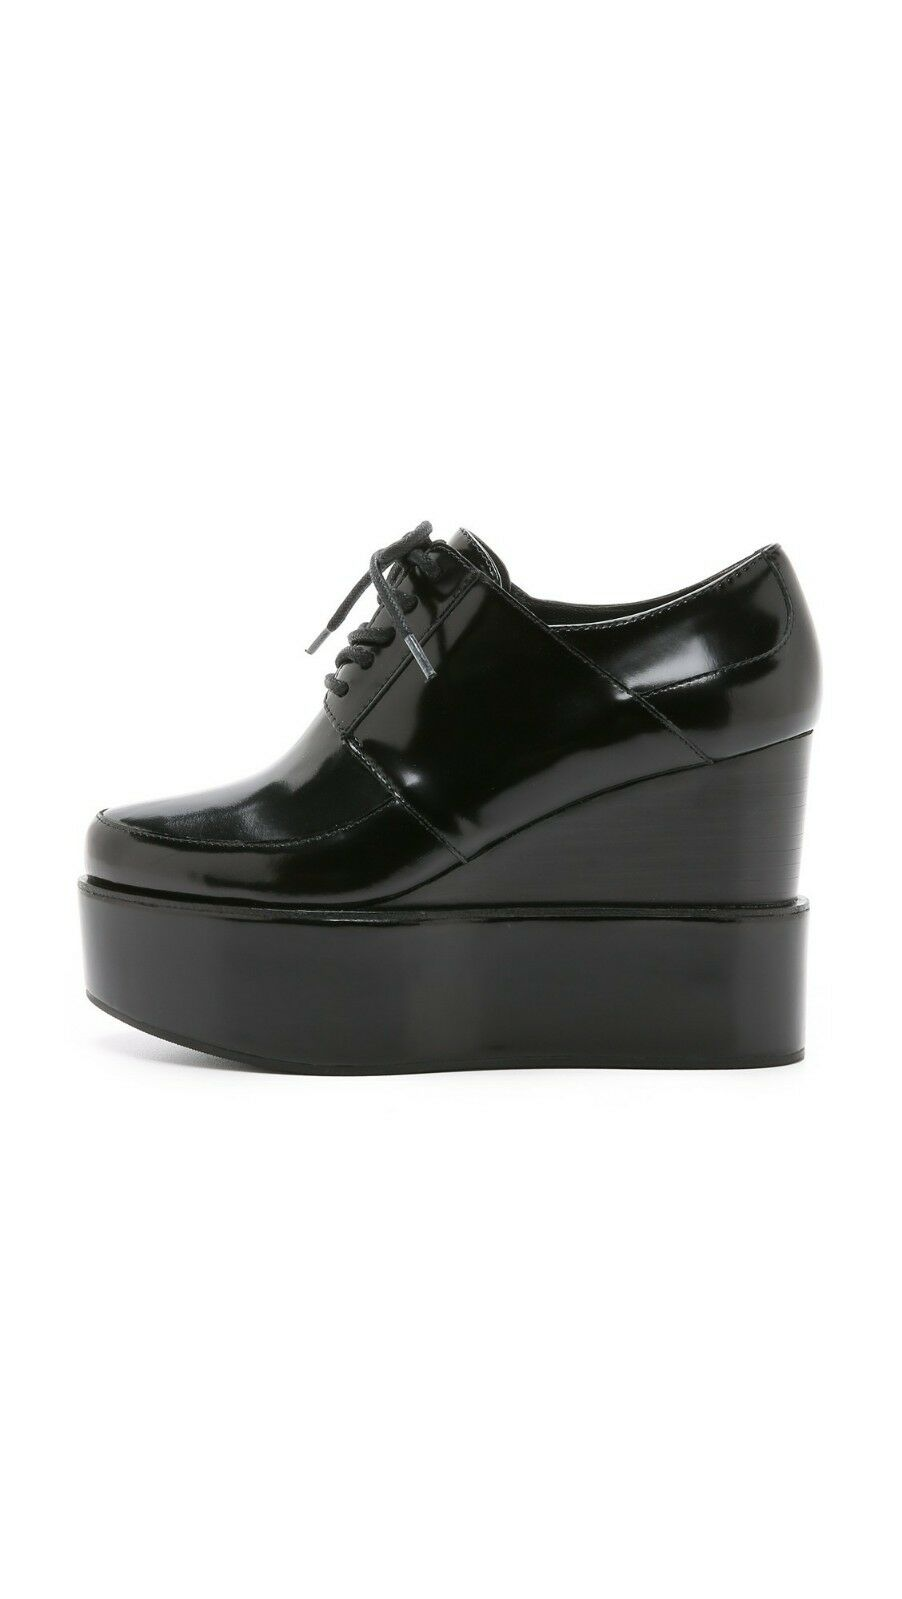 DKNY Step Tailored Platform Wedges Wedges Wedges Lace Up Oxfords shoes Black Sz 9 EU 40 As is 57f599